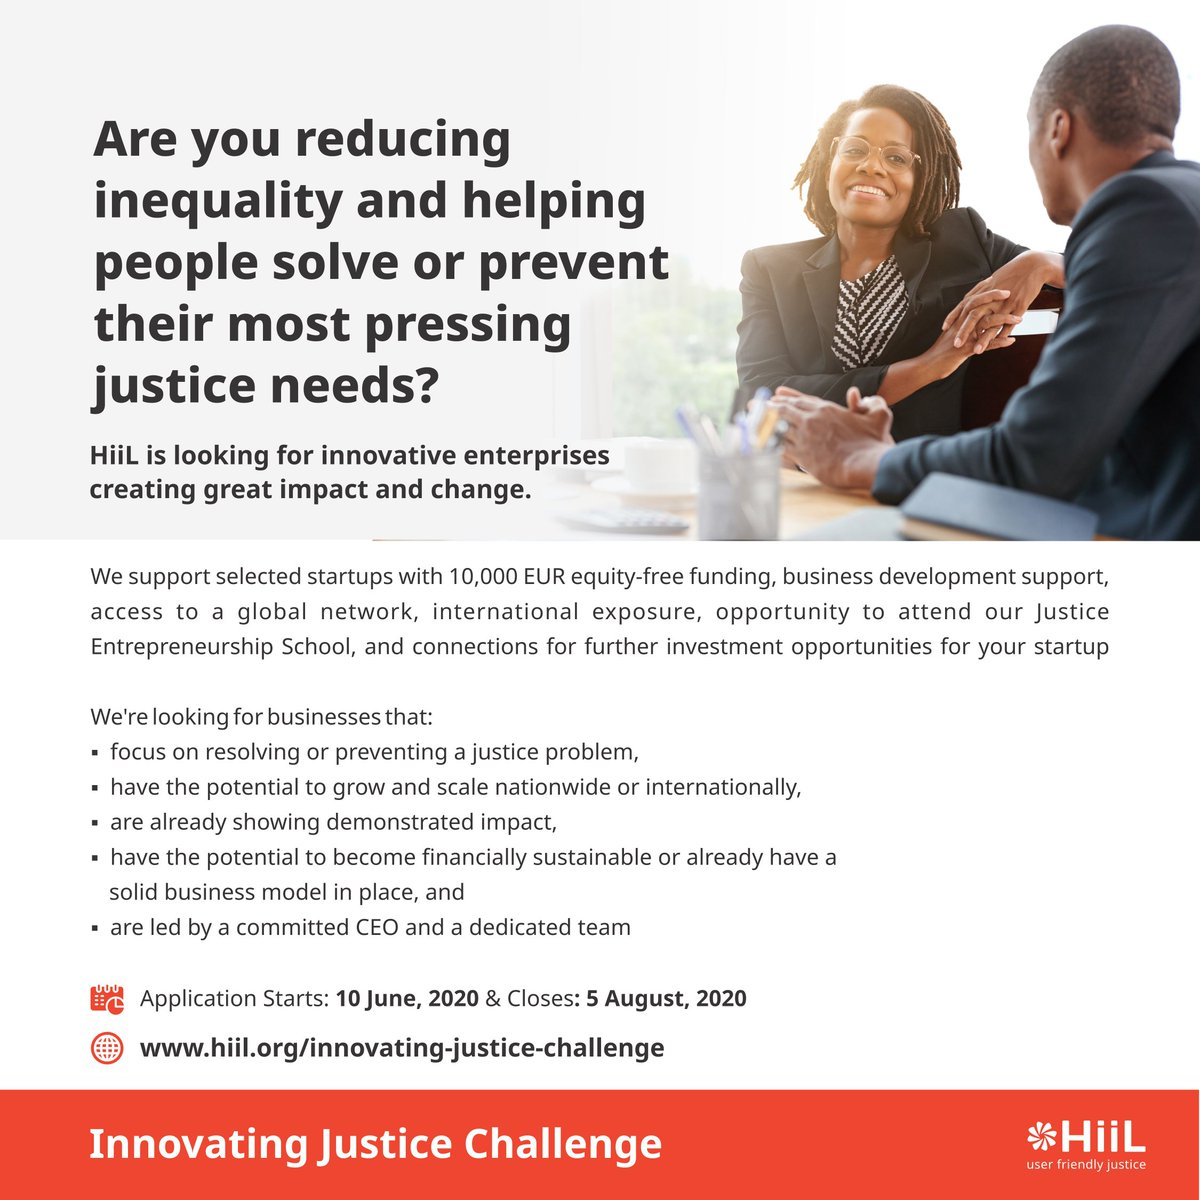 It's a new week.😁  Another opportunity to apply for the HiiL Innovating Justice Challenge.  Apply here: https://t.co/3947YFZEgx  #justinnovate20 #innovatingjusticechallenge2020 #accesstojustice https://t.co/9wKepaNPE2 https://t.co/X3SBlMrDgP